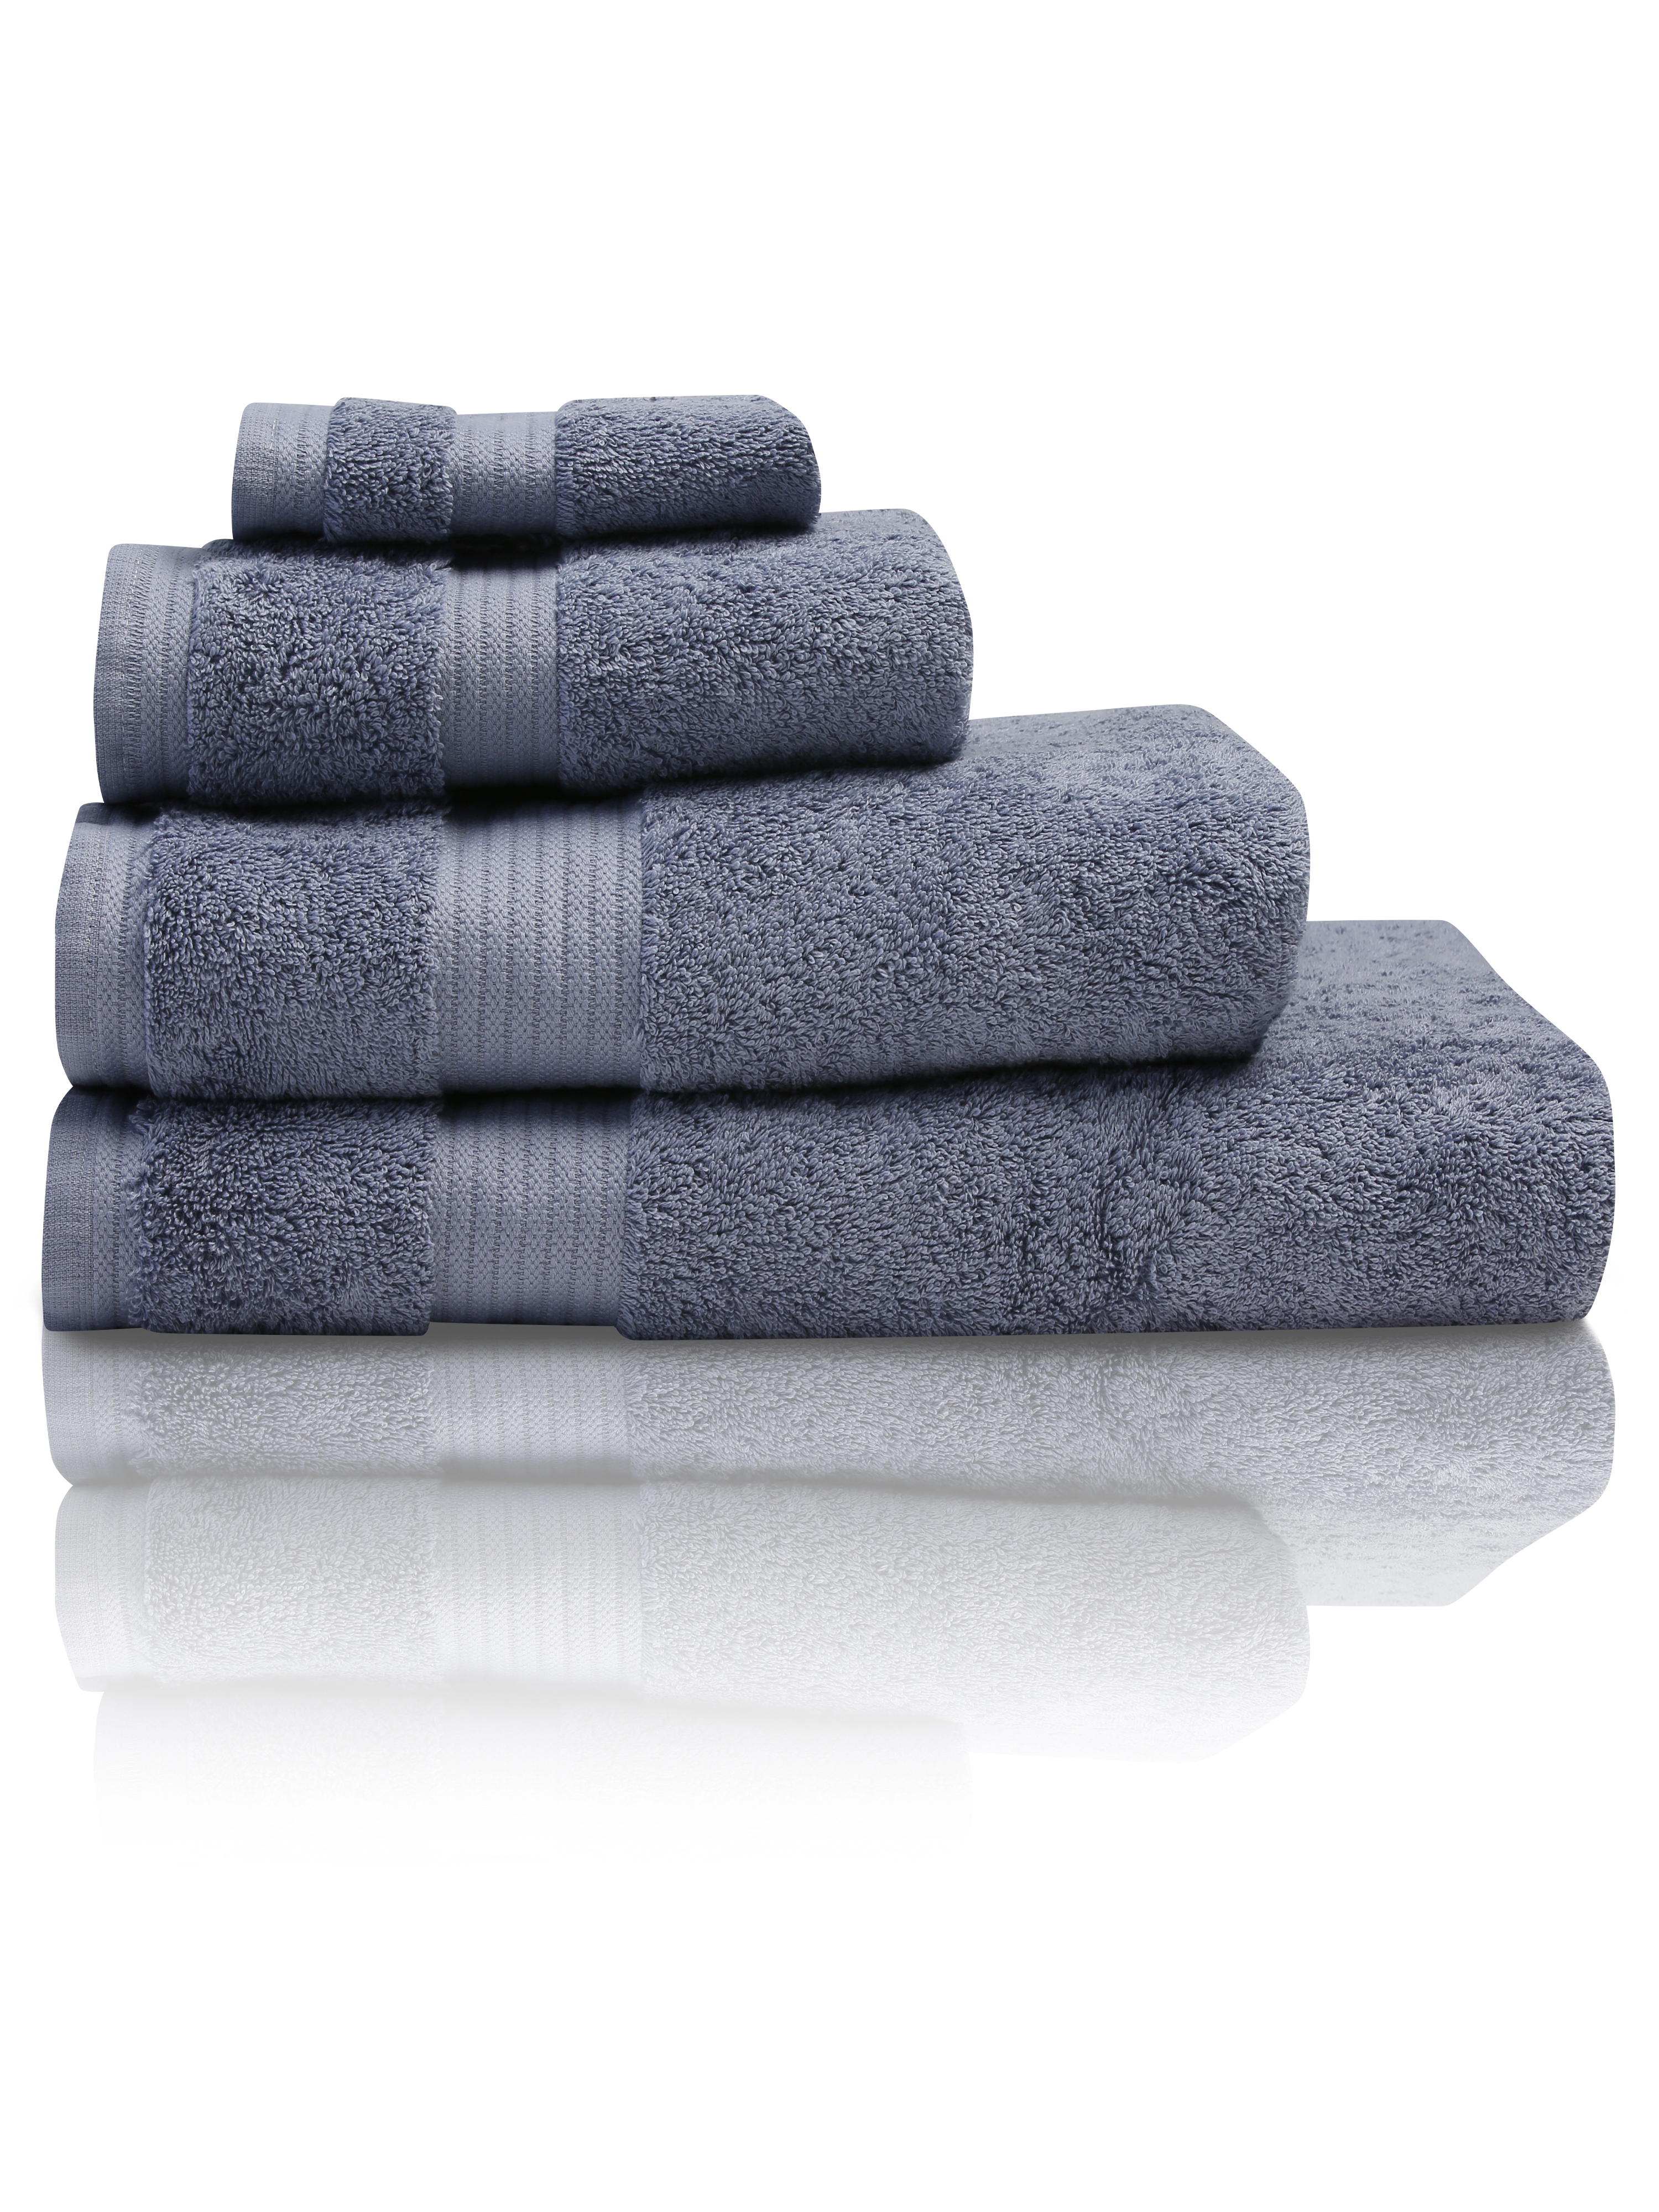 Denim Combed Cotton Towels